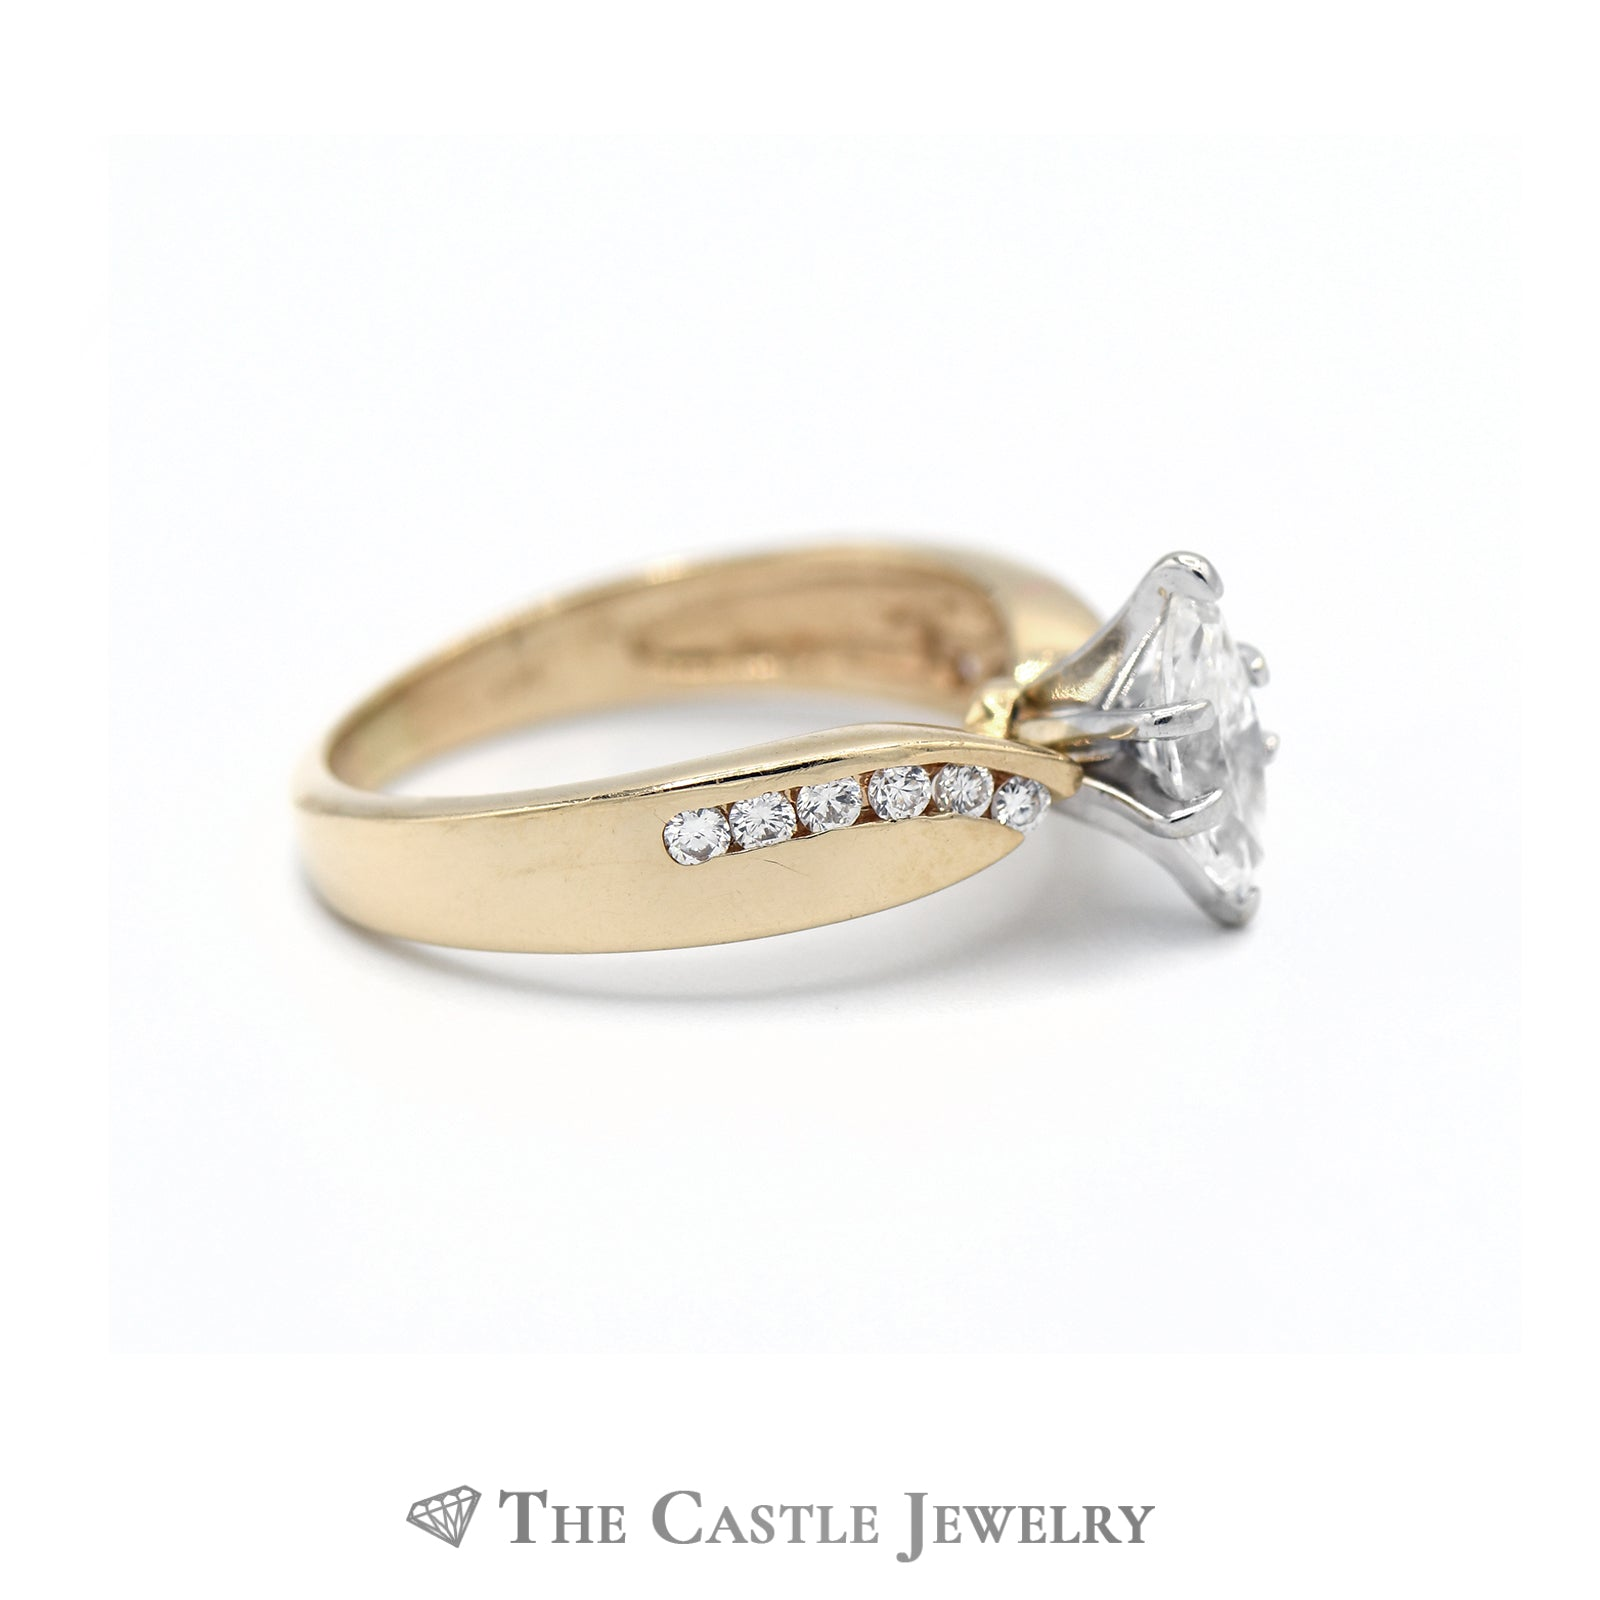 Marquise Center Cut Diamond with Diamond Accents in 14kt Yellow Gold-2